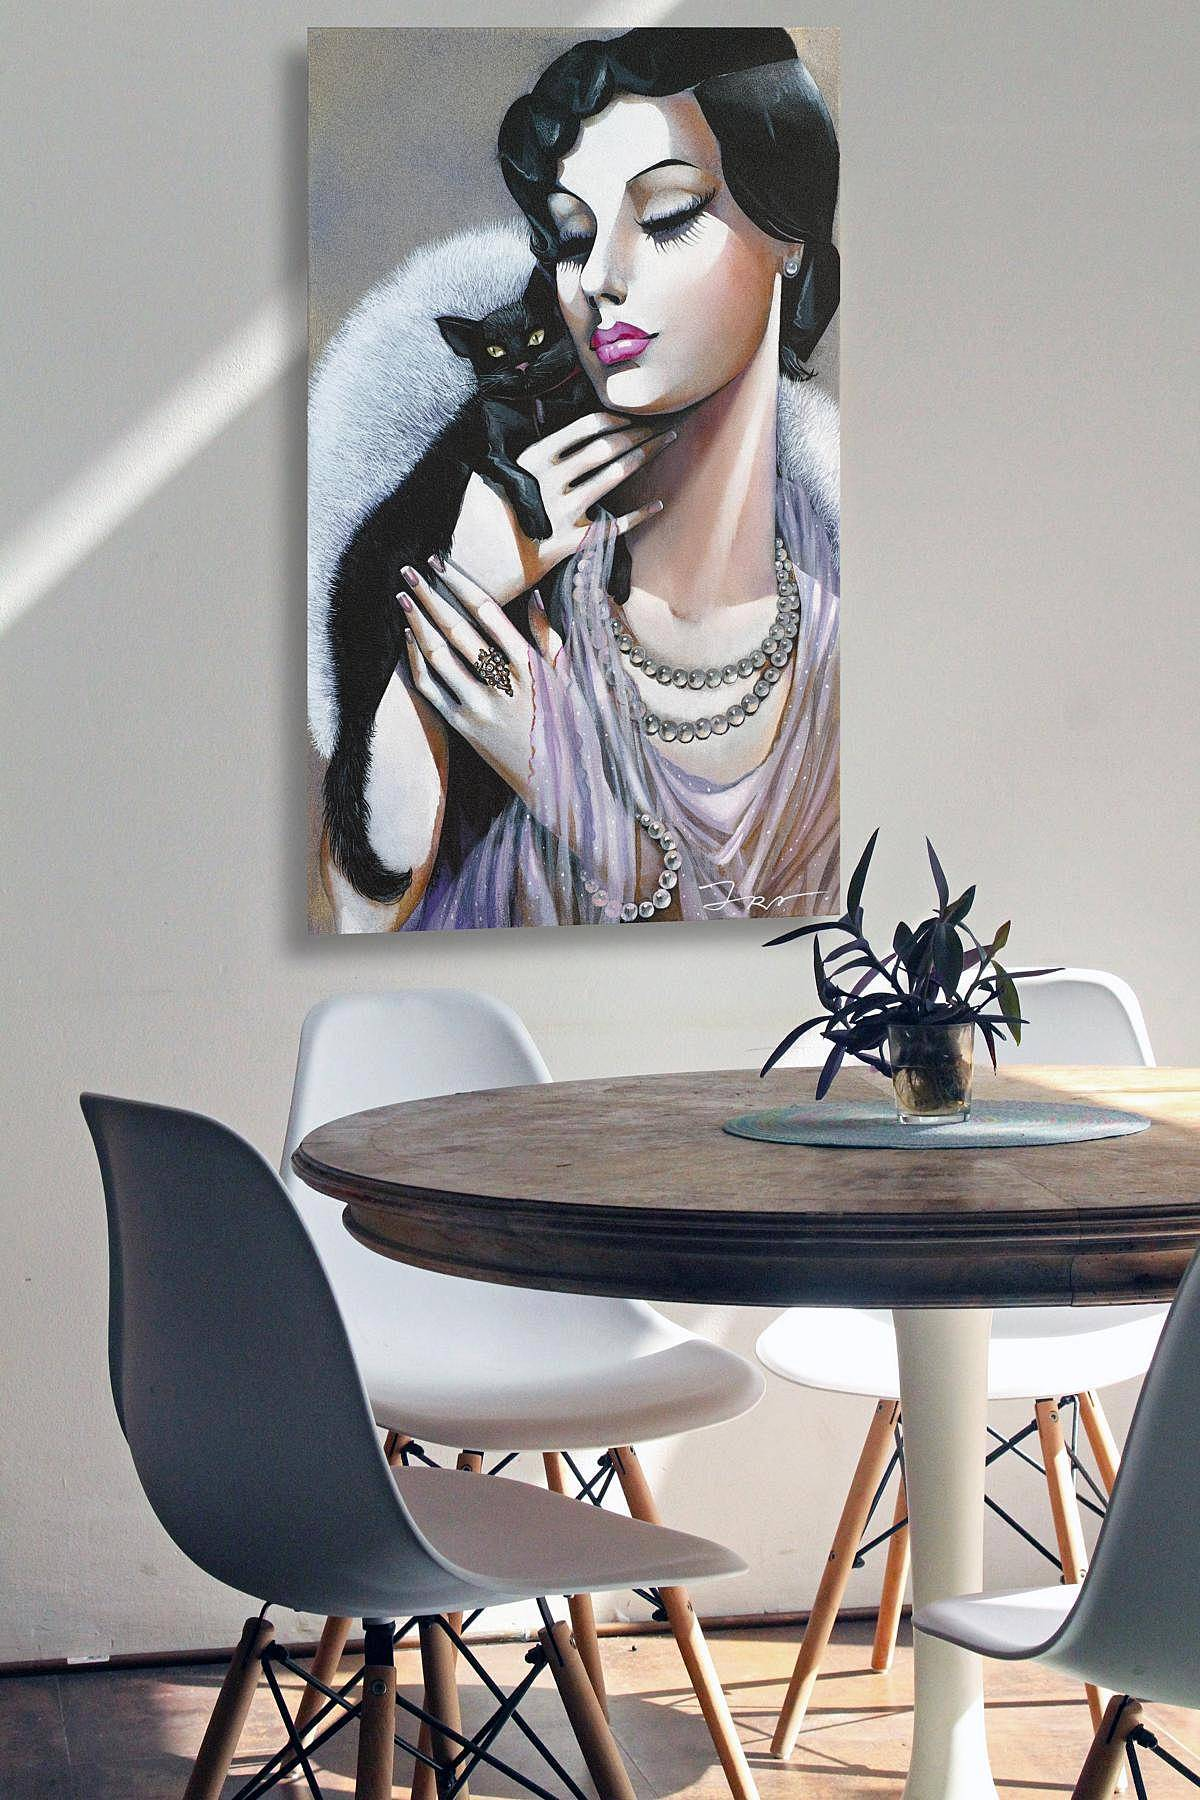 SERIES ART DECO, Lady with Black Cat